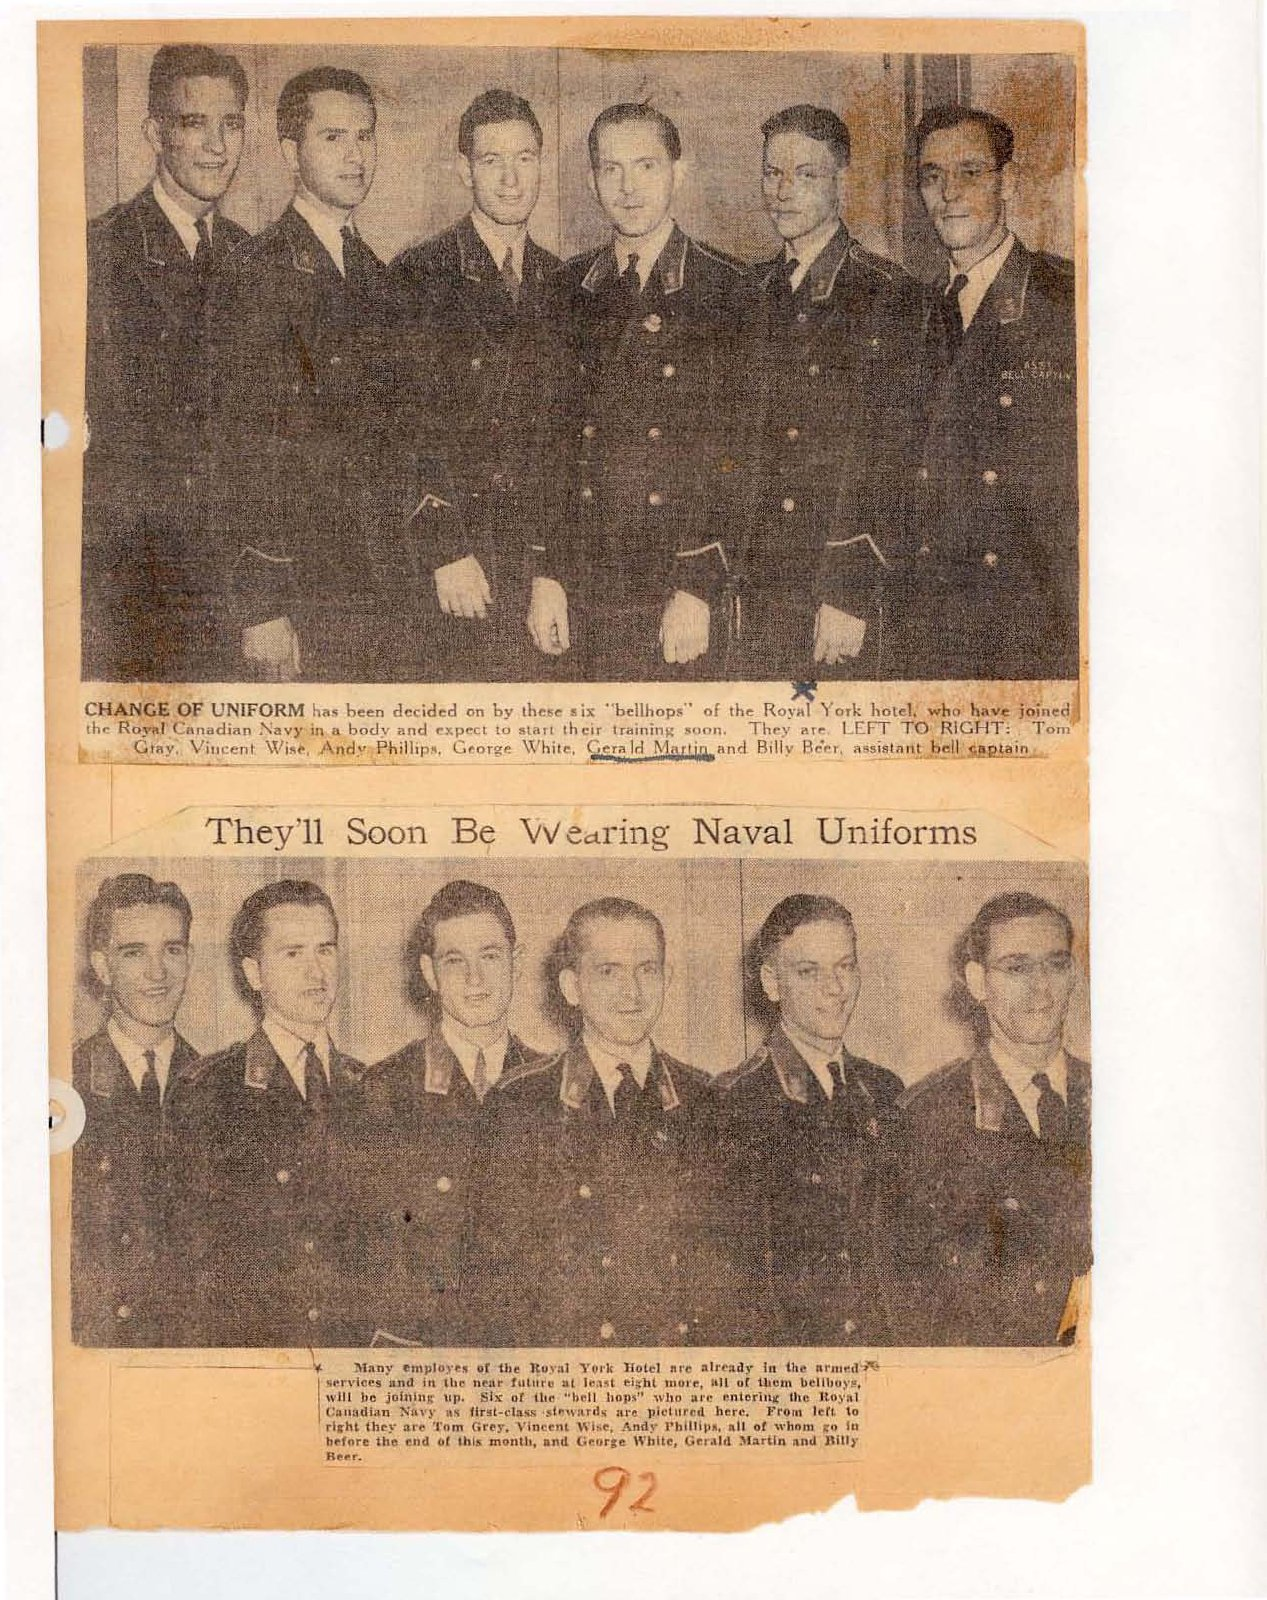 Page 81: They'll soon be wearing naval uniforms